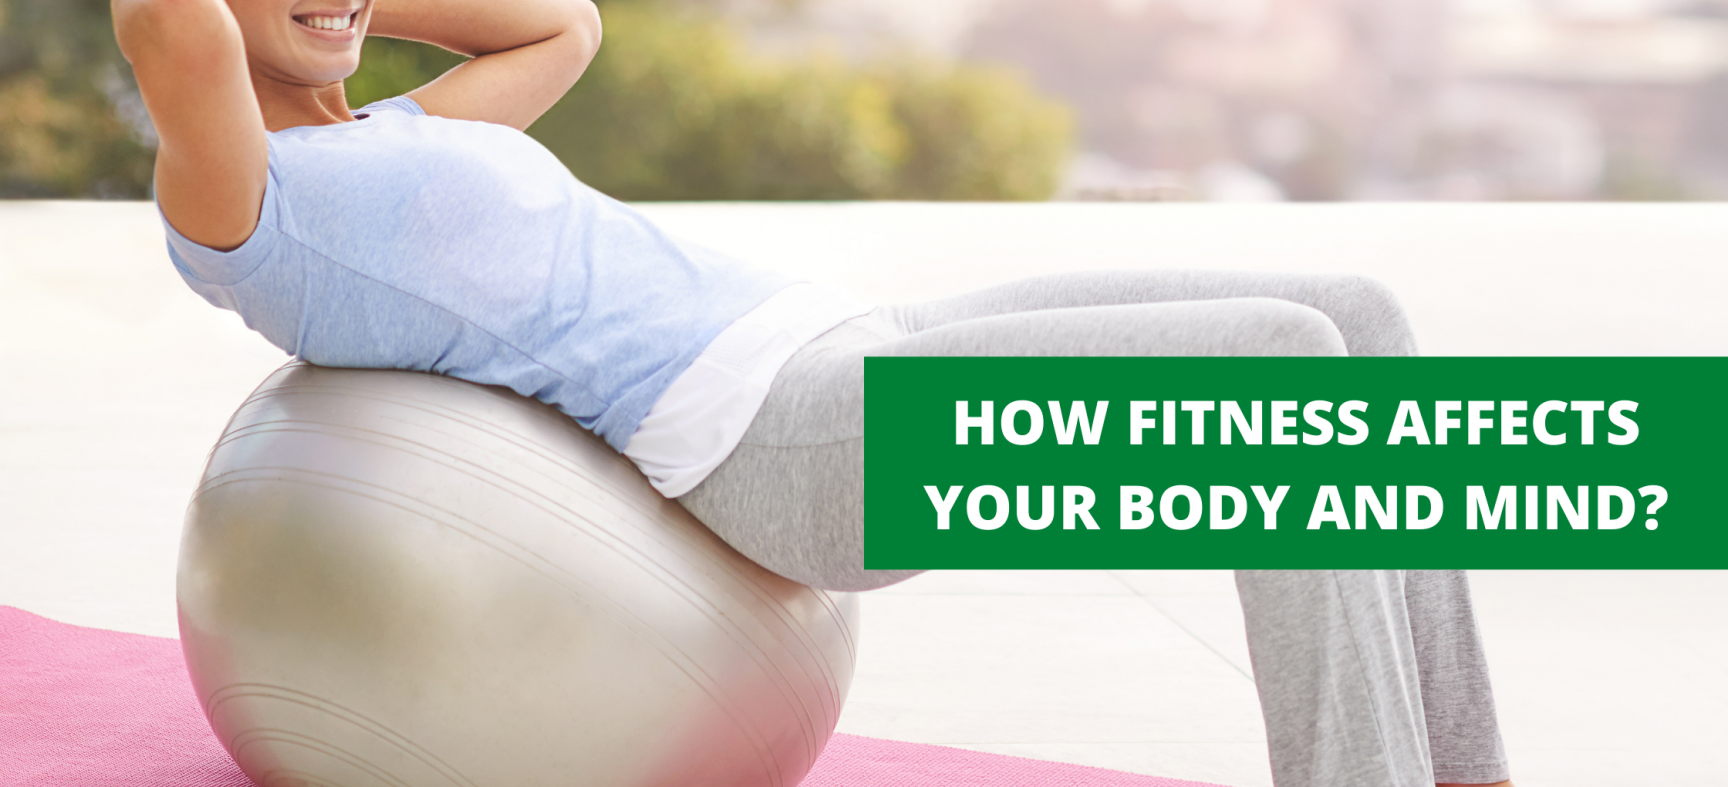 HOW FITNESS AFFECTS YOUR BODY AND MIND?